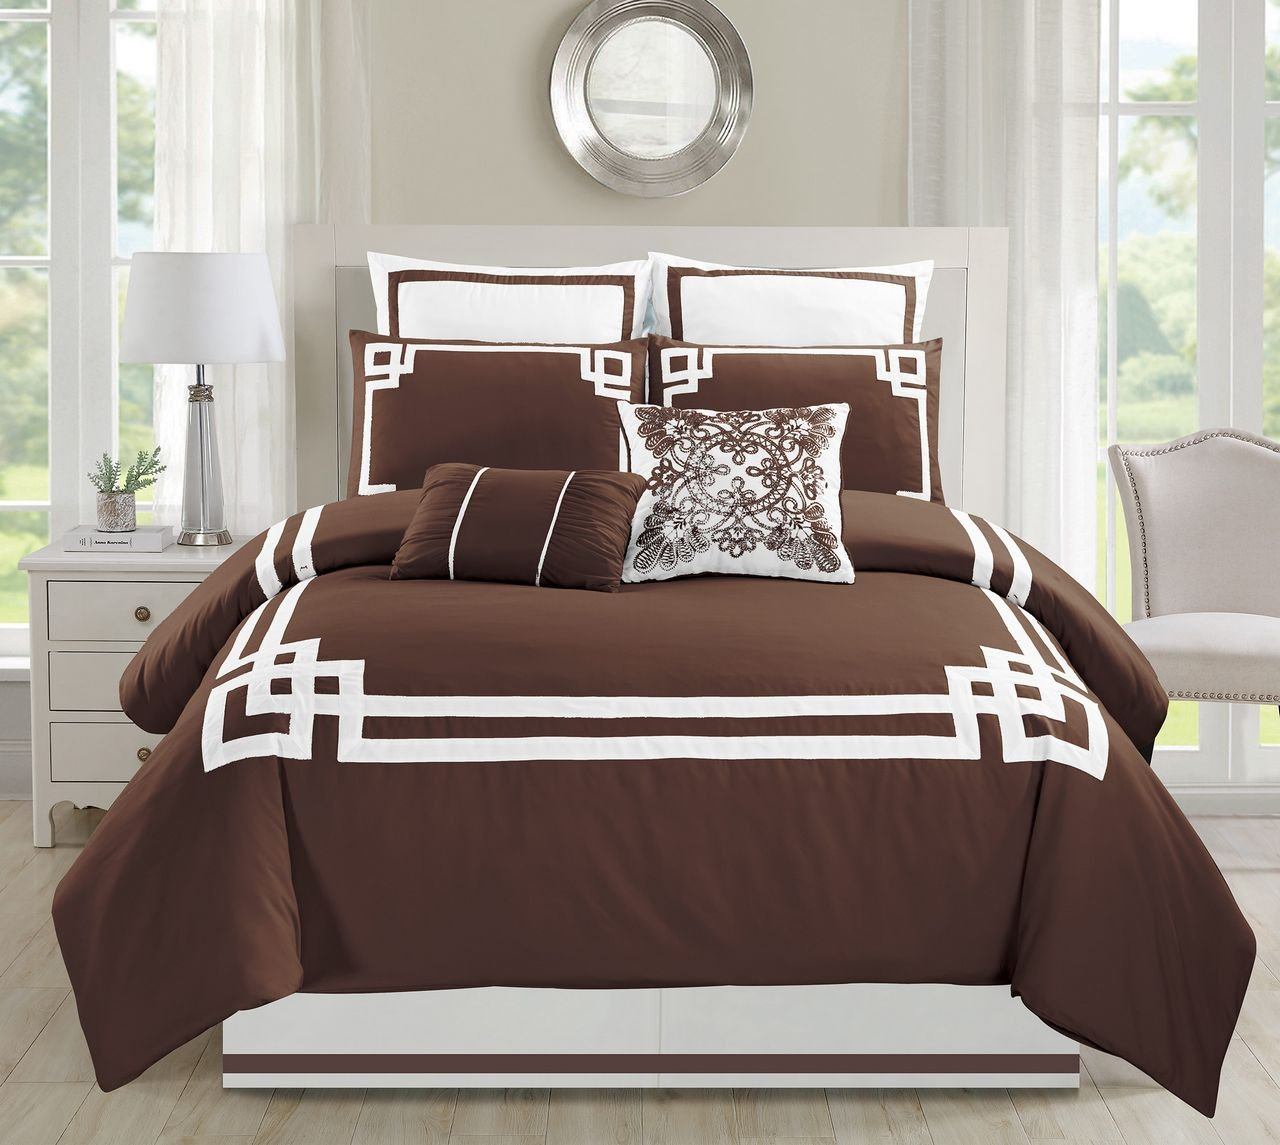 12 Piece Lucca Coffee Bed in a Bag Set Queen